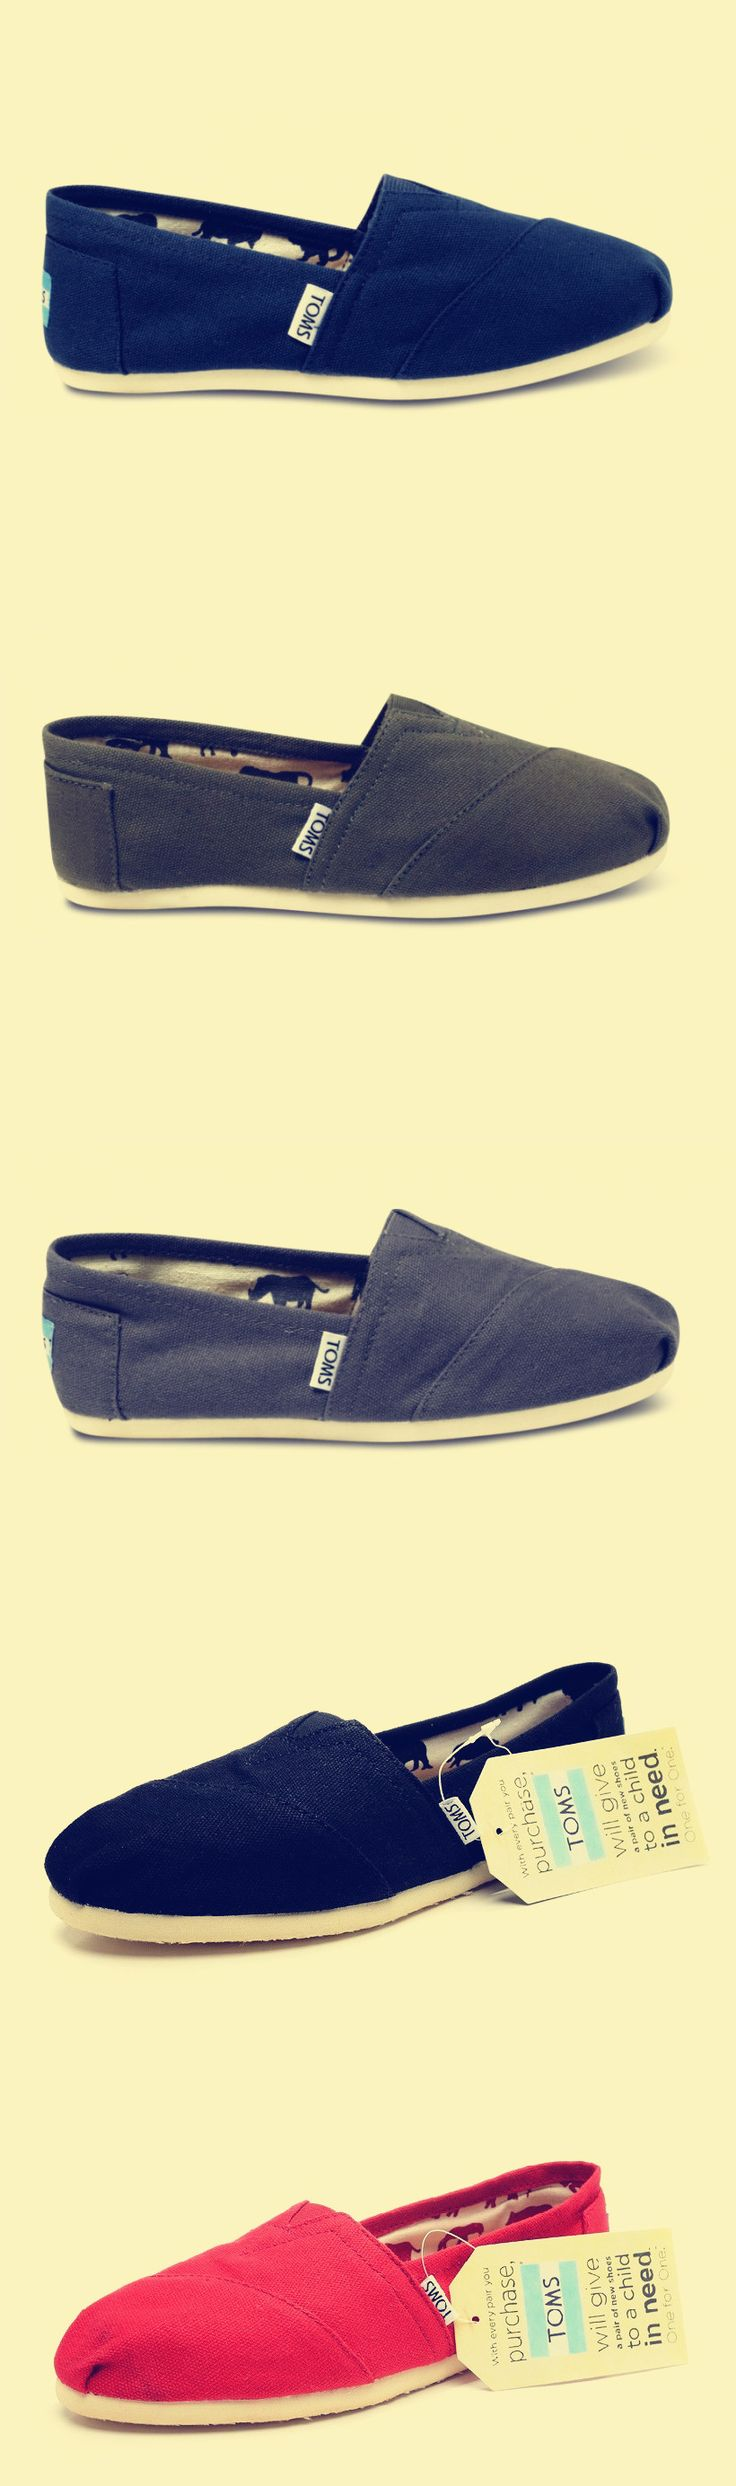 Super cheap, toms shoes in any style you want.$20 Only!